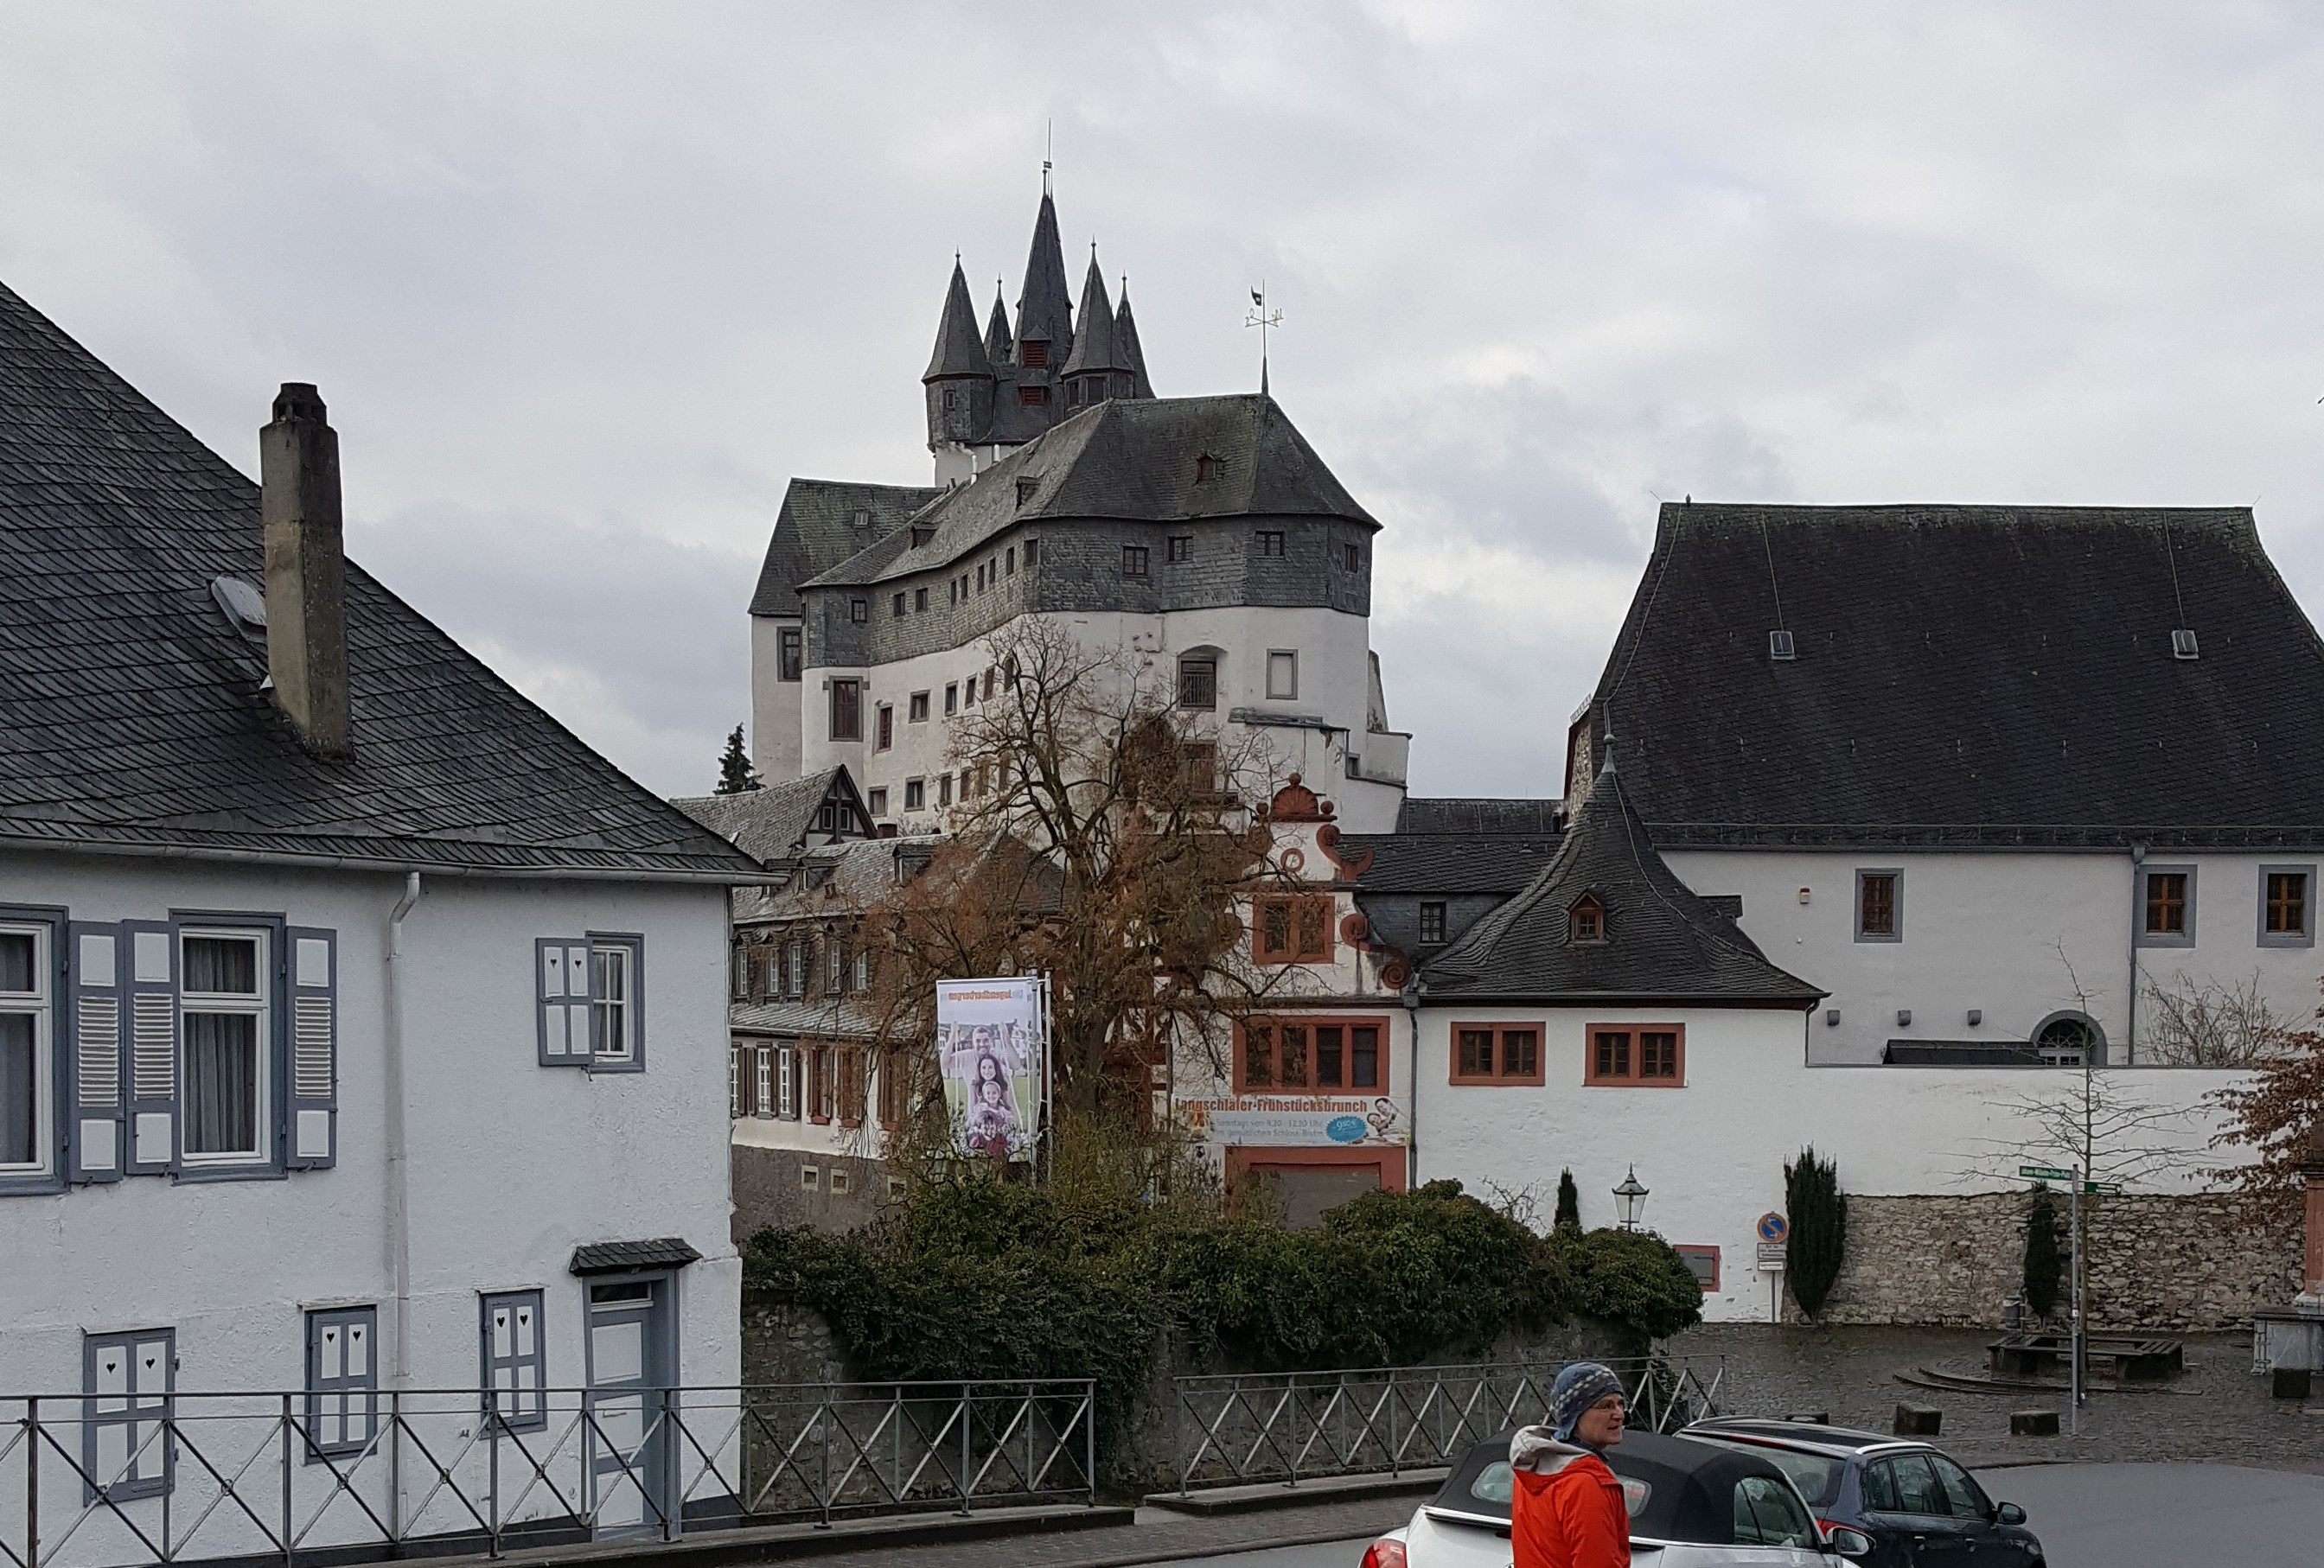 The castle in Diez. Photo by Dragonfly Leathrum